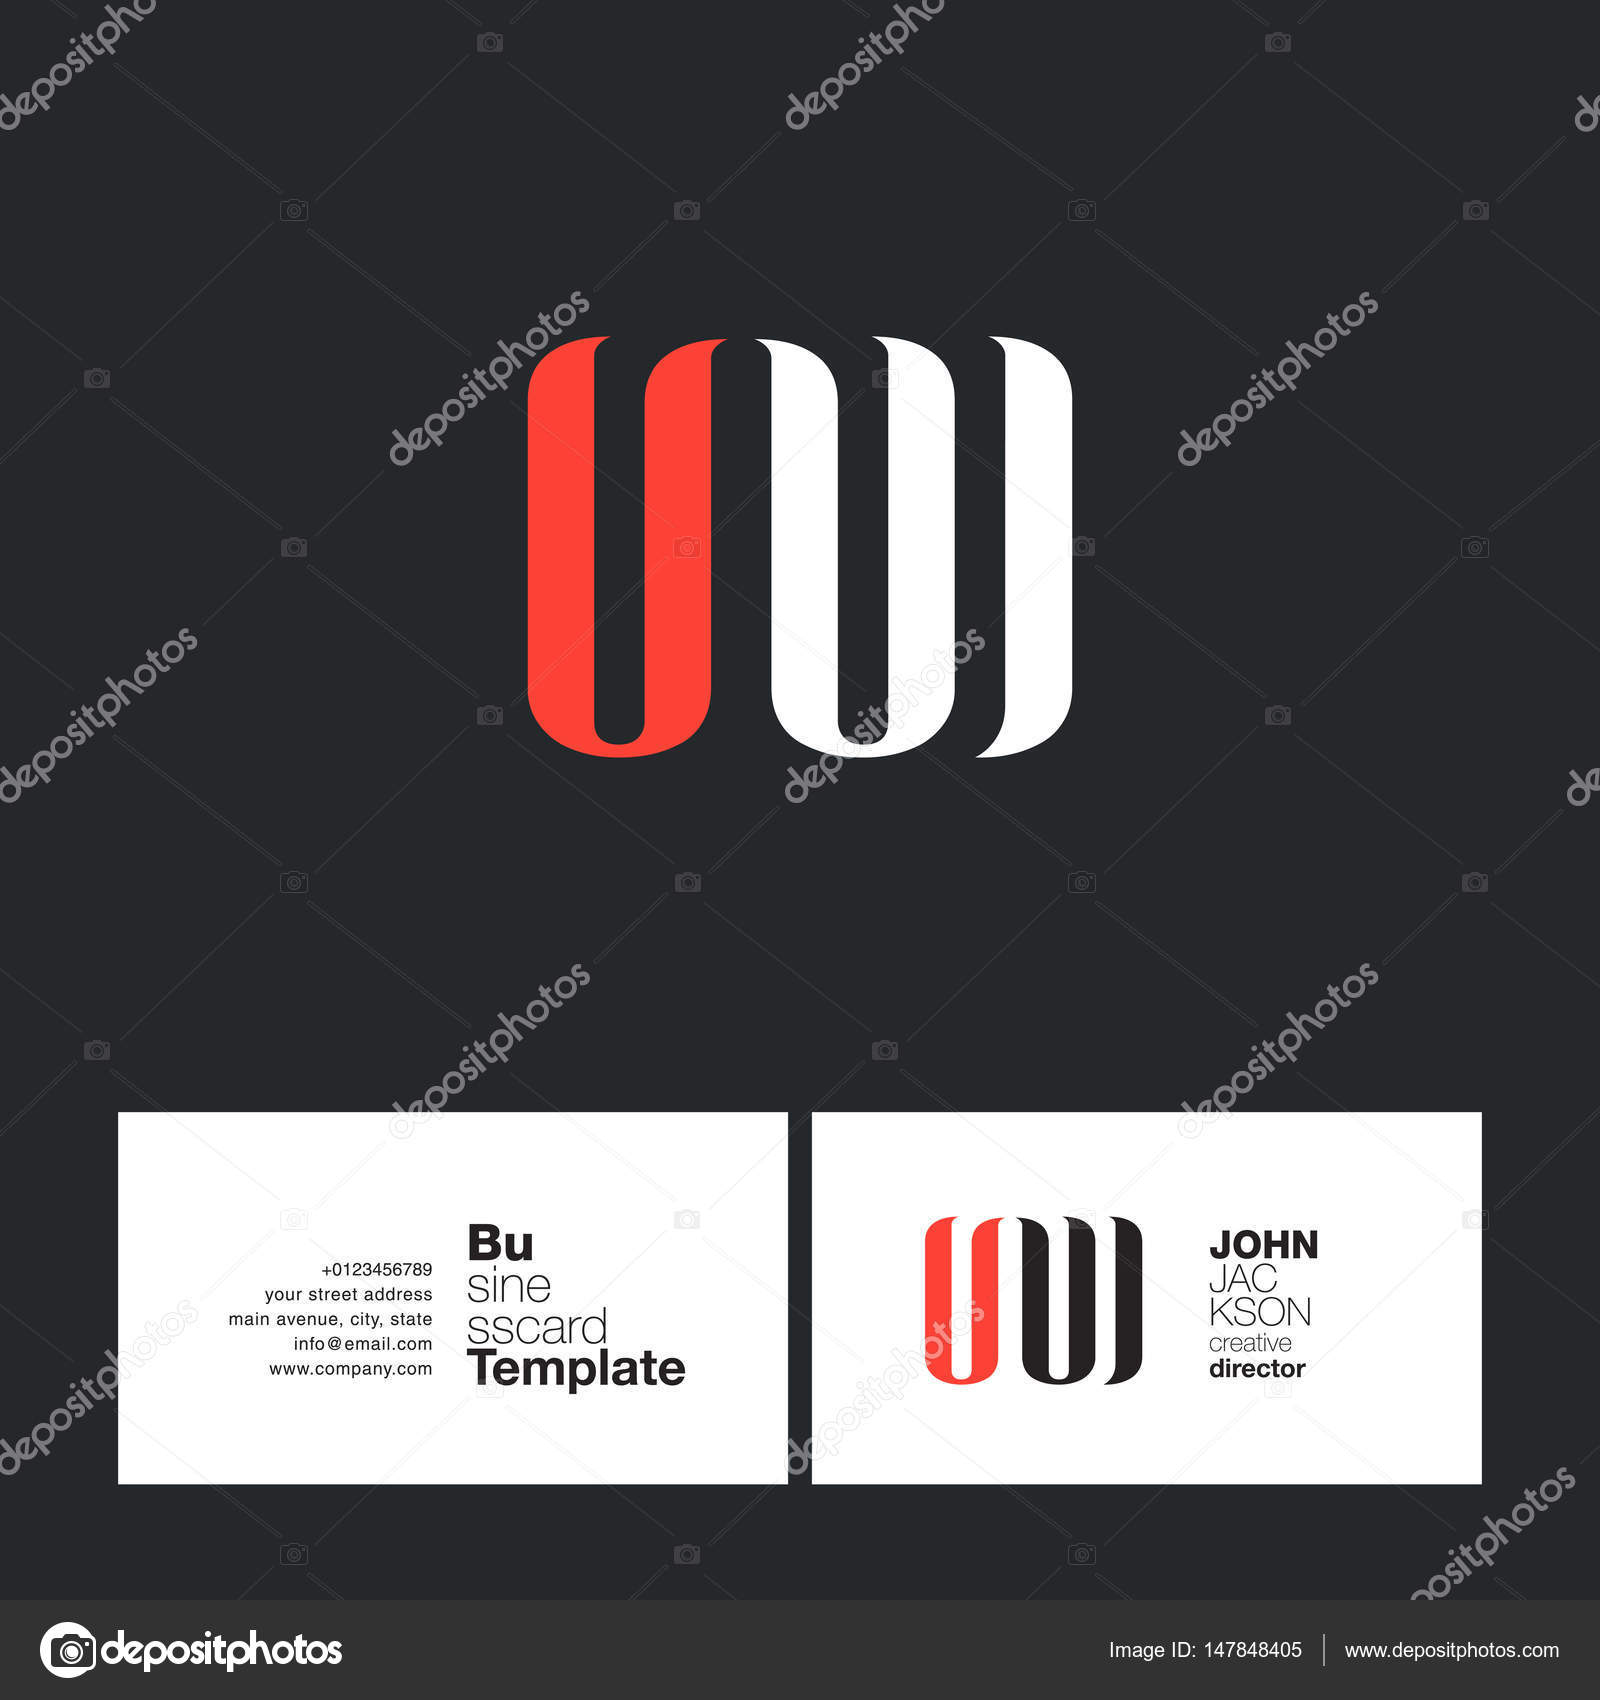 UW Letters Logo Business Card — Stock Vector © brainbistro #147848405